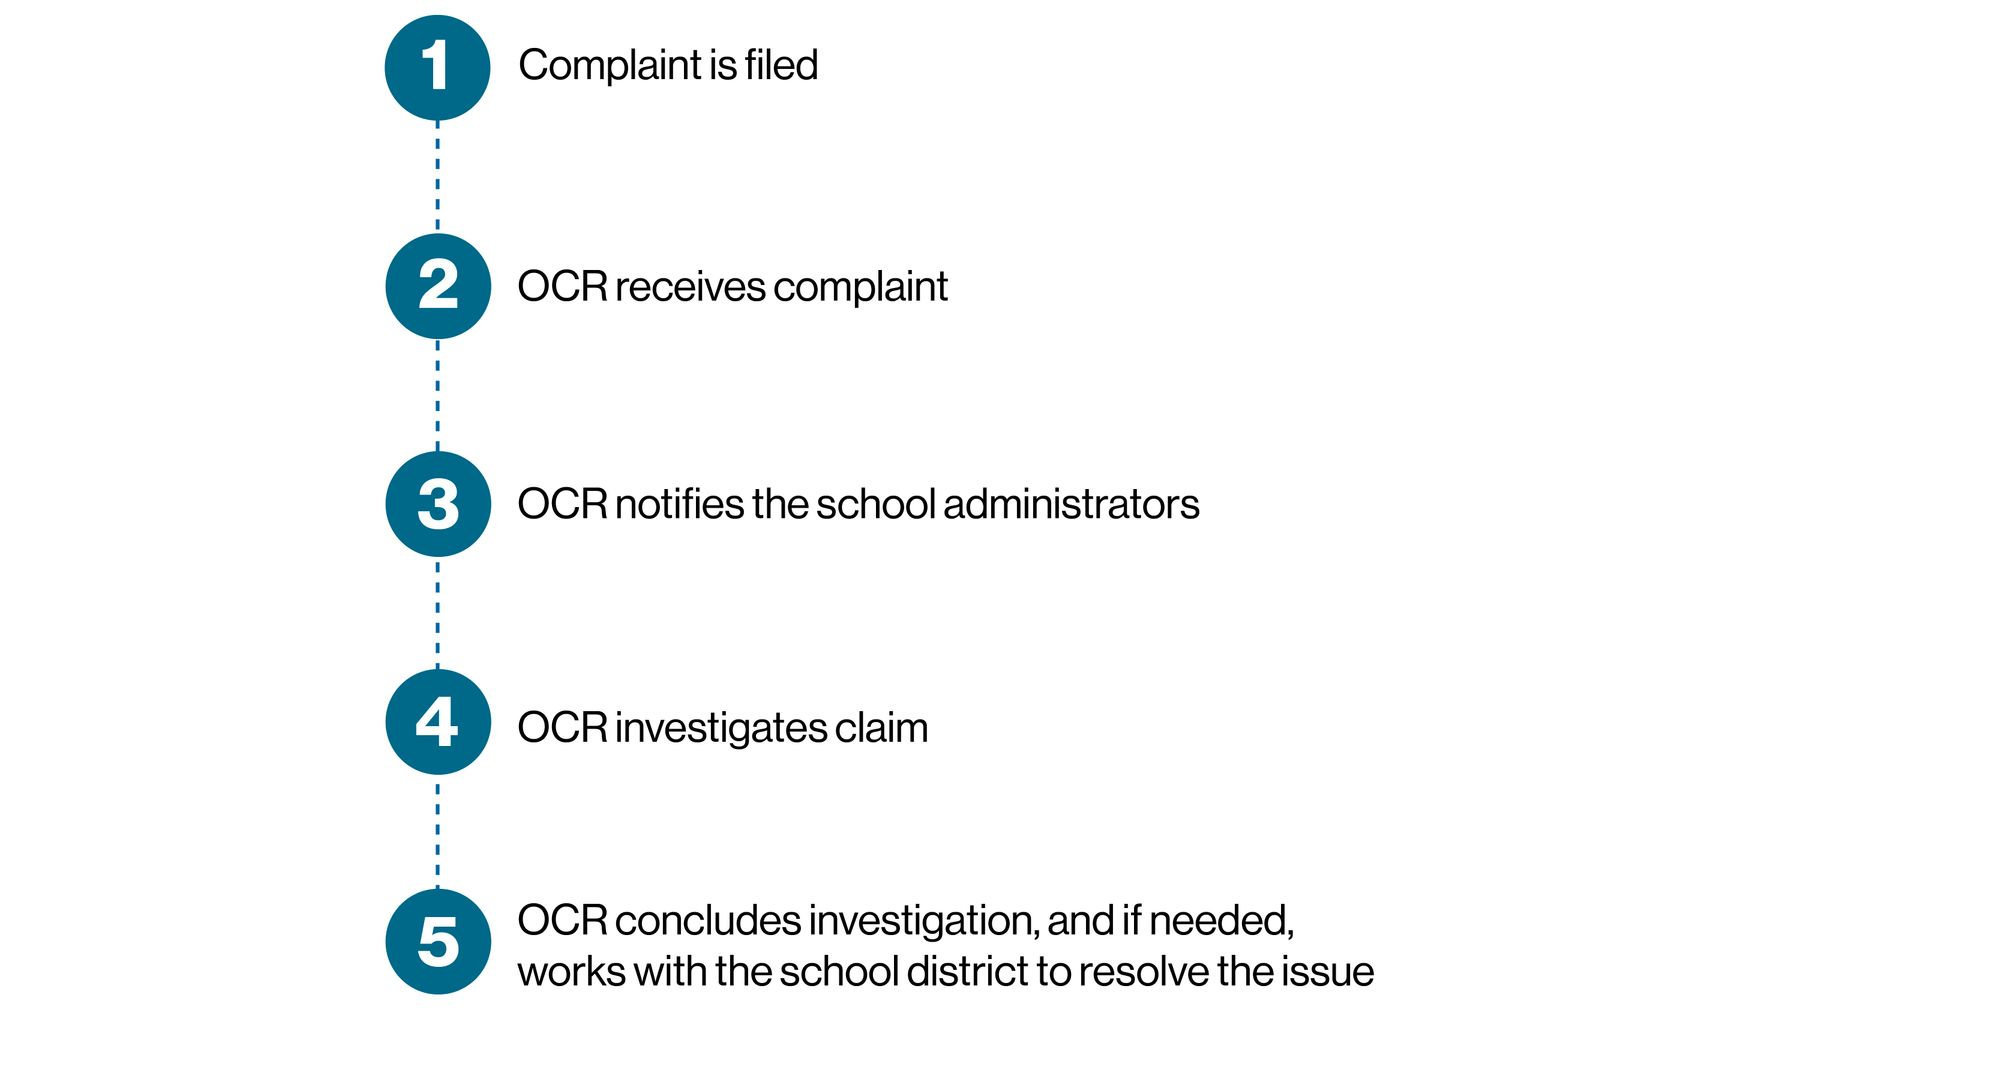 infographic 1st Complaint Filed 2nd OCR receives complaint 3rd OCR notifies school admin 4th OCR investigates claim 5th OCR concludes investigation and works with the school board to resolve issue